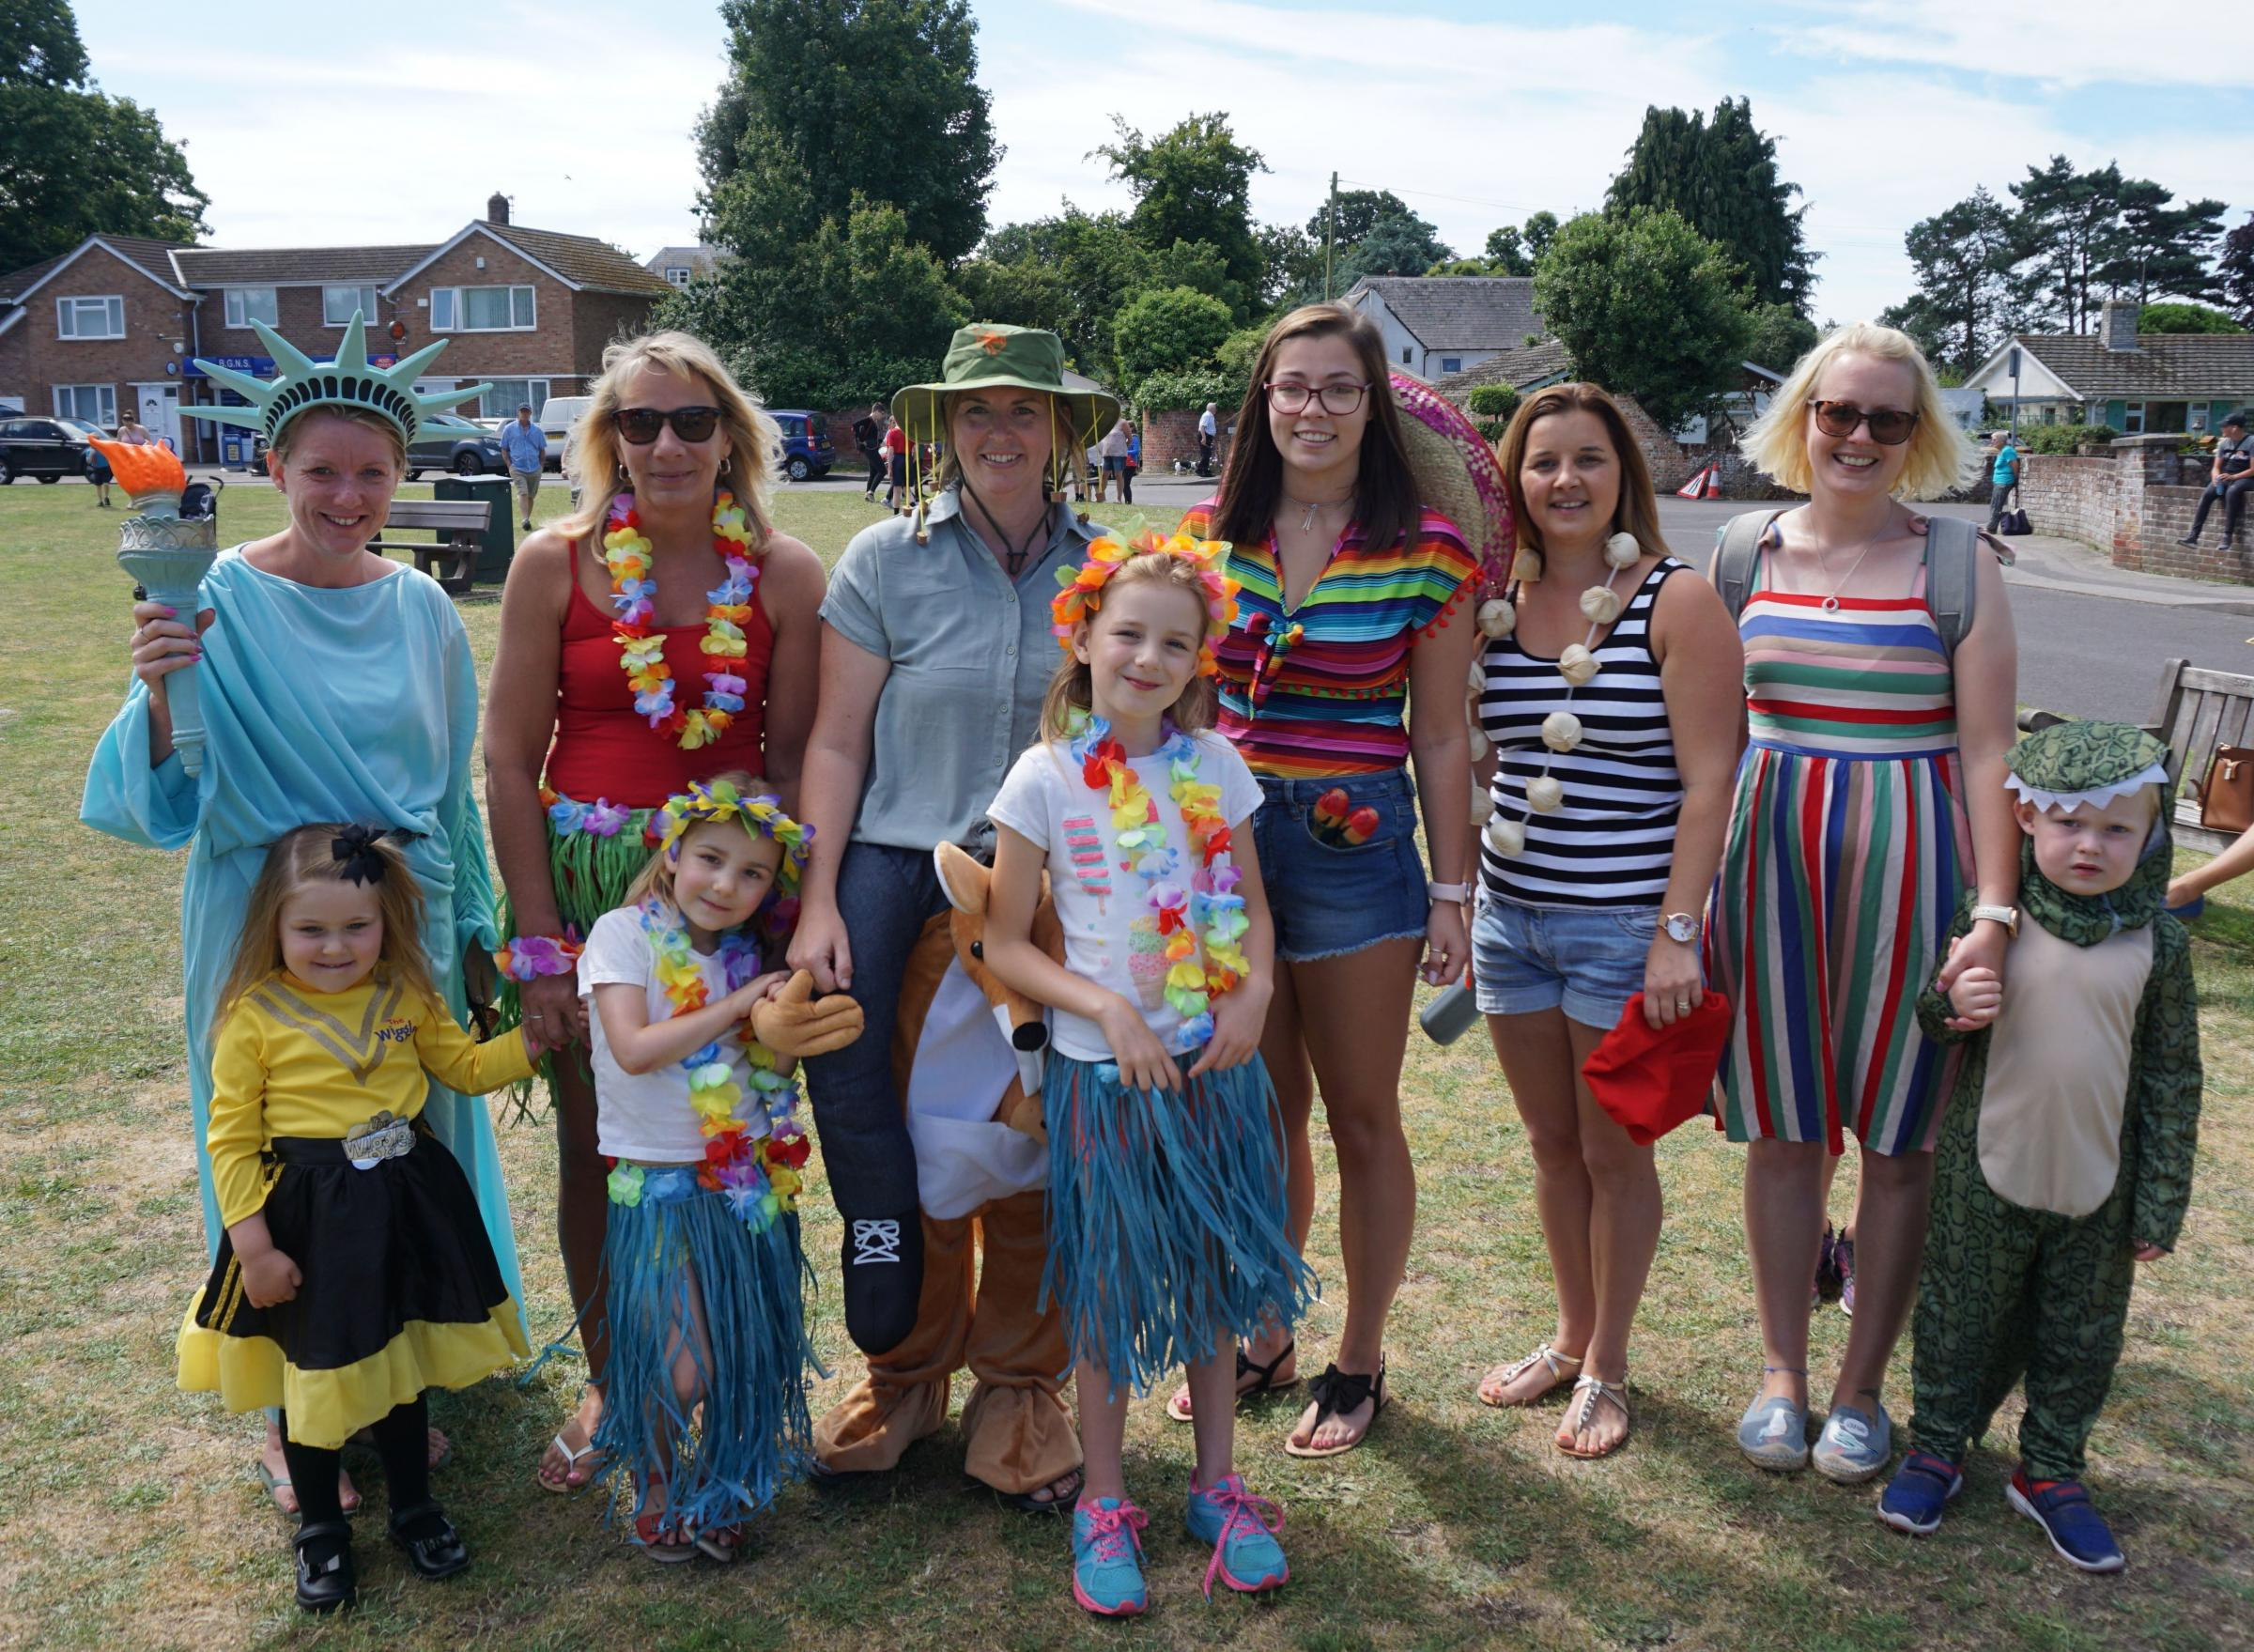 Pictures from Burton Carnival 2019